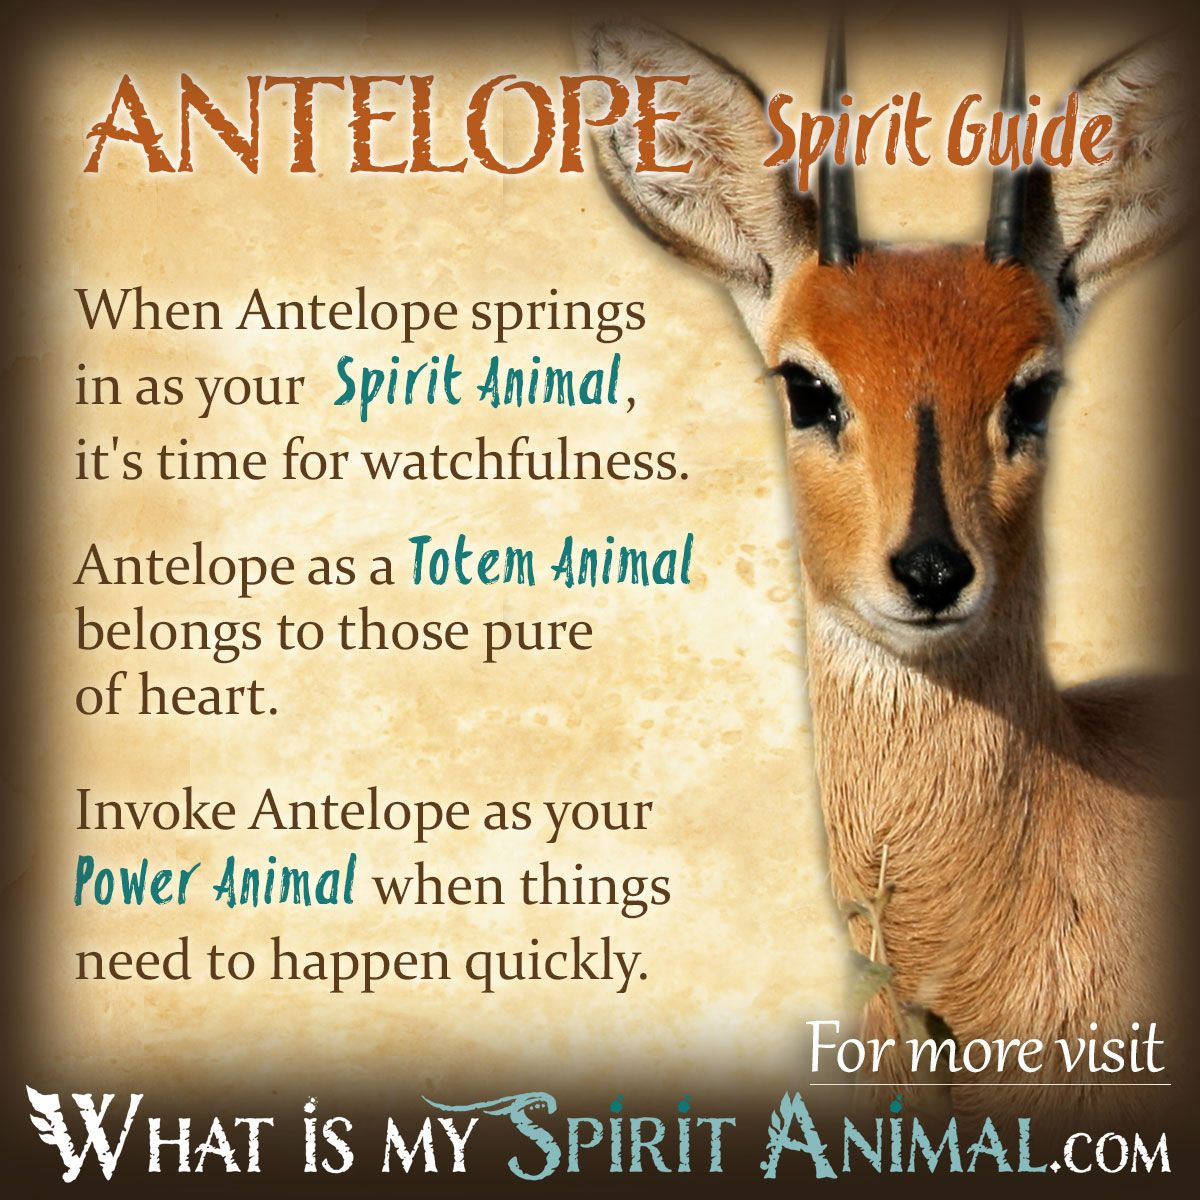 Anteater Symbolism & Meaning | ANTELOPE Symbolism & Meaning